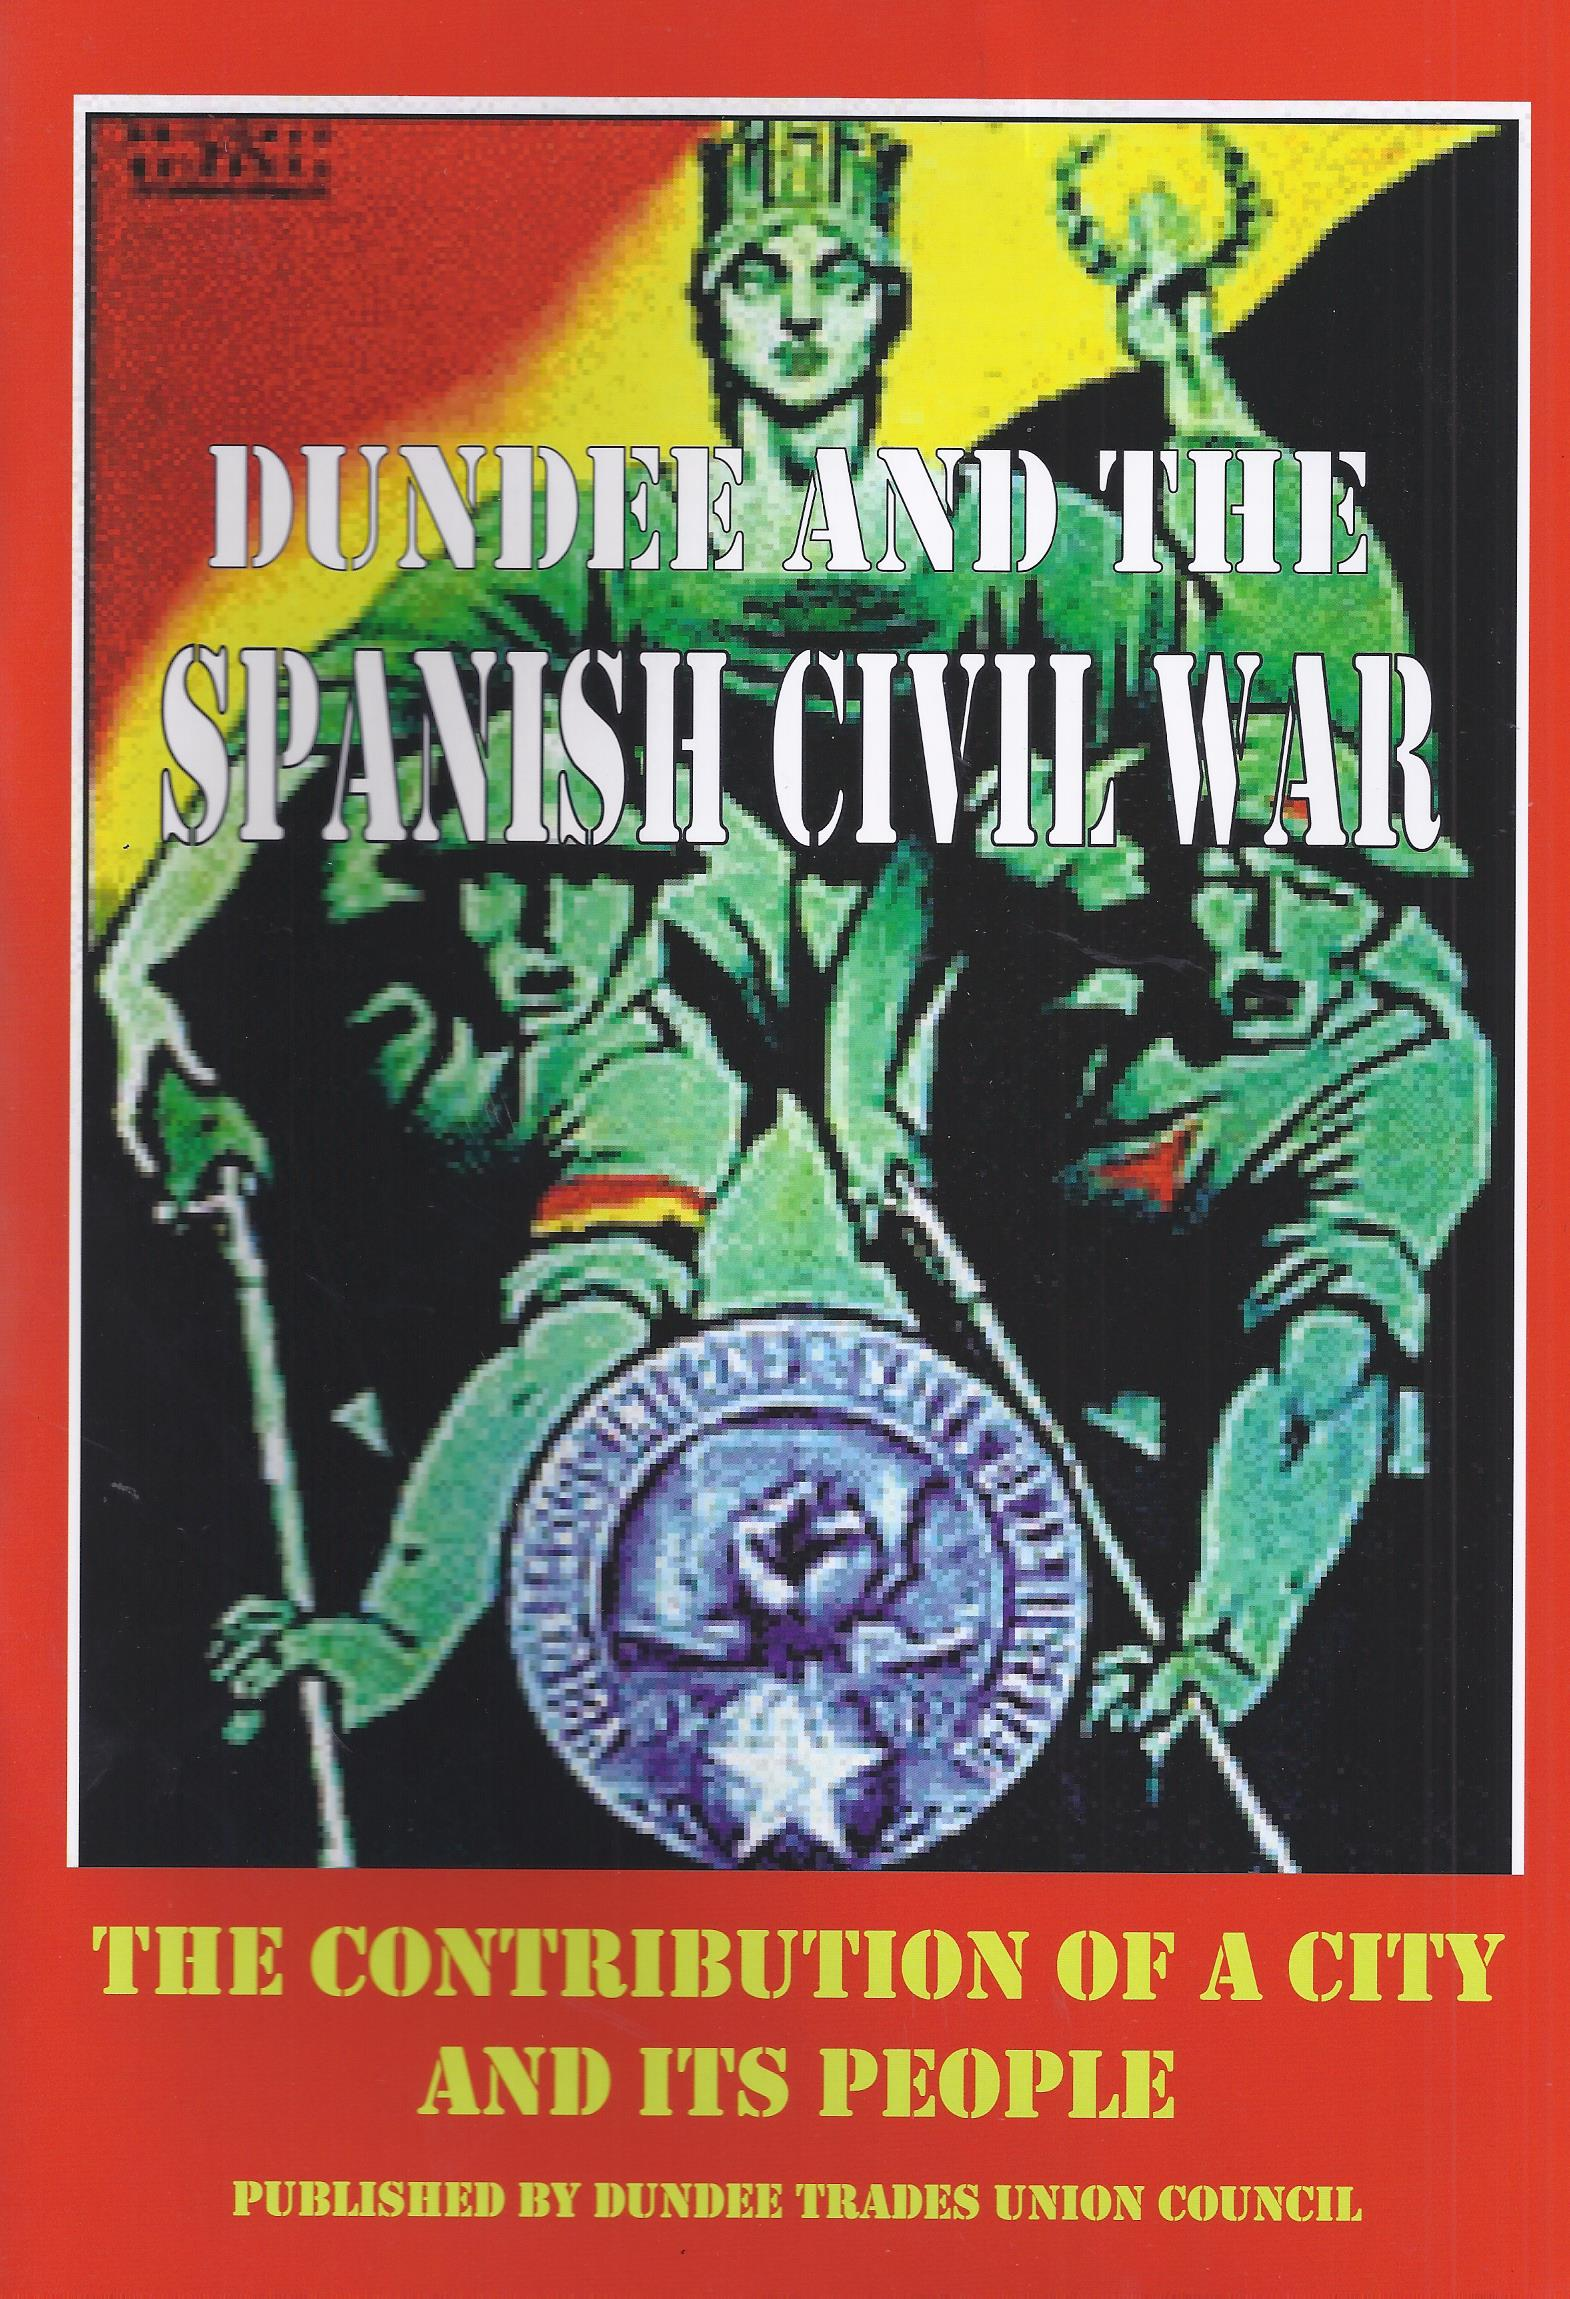 Dundee and the Spanish Civil War : the contribution of a City and its people. Mike Arnott (dir.) Dundee : Dundee Trades Union Council, 2008. 40 p.